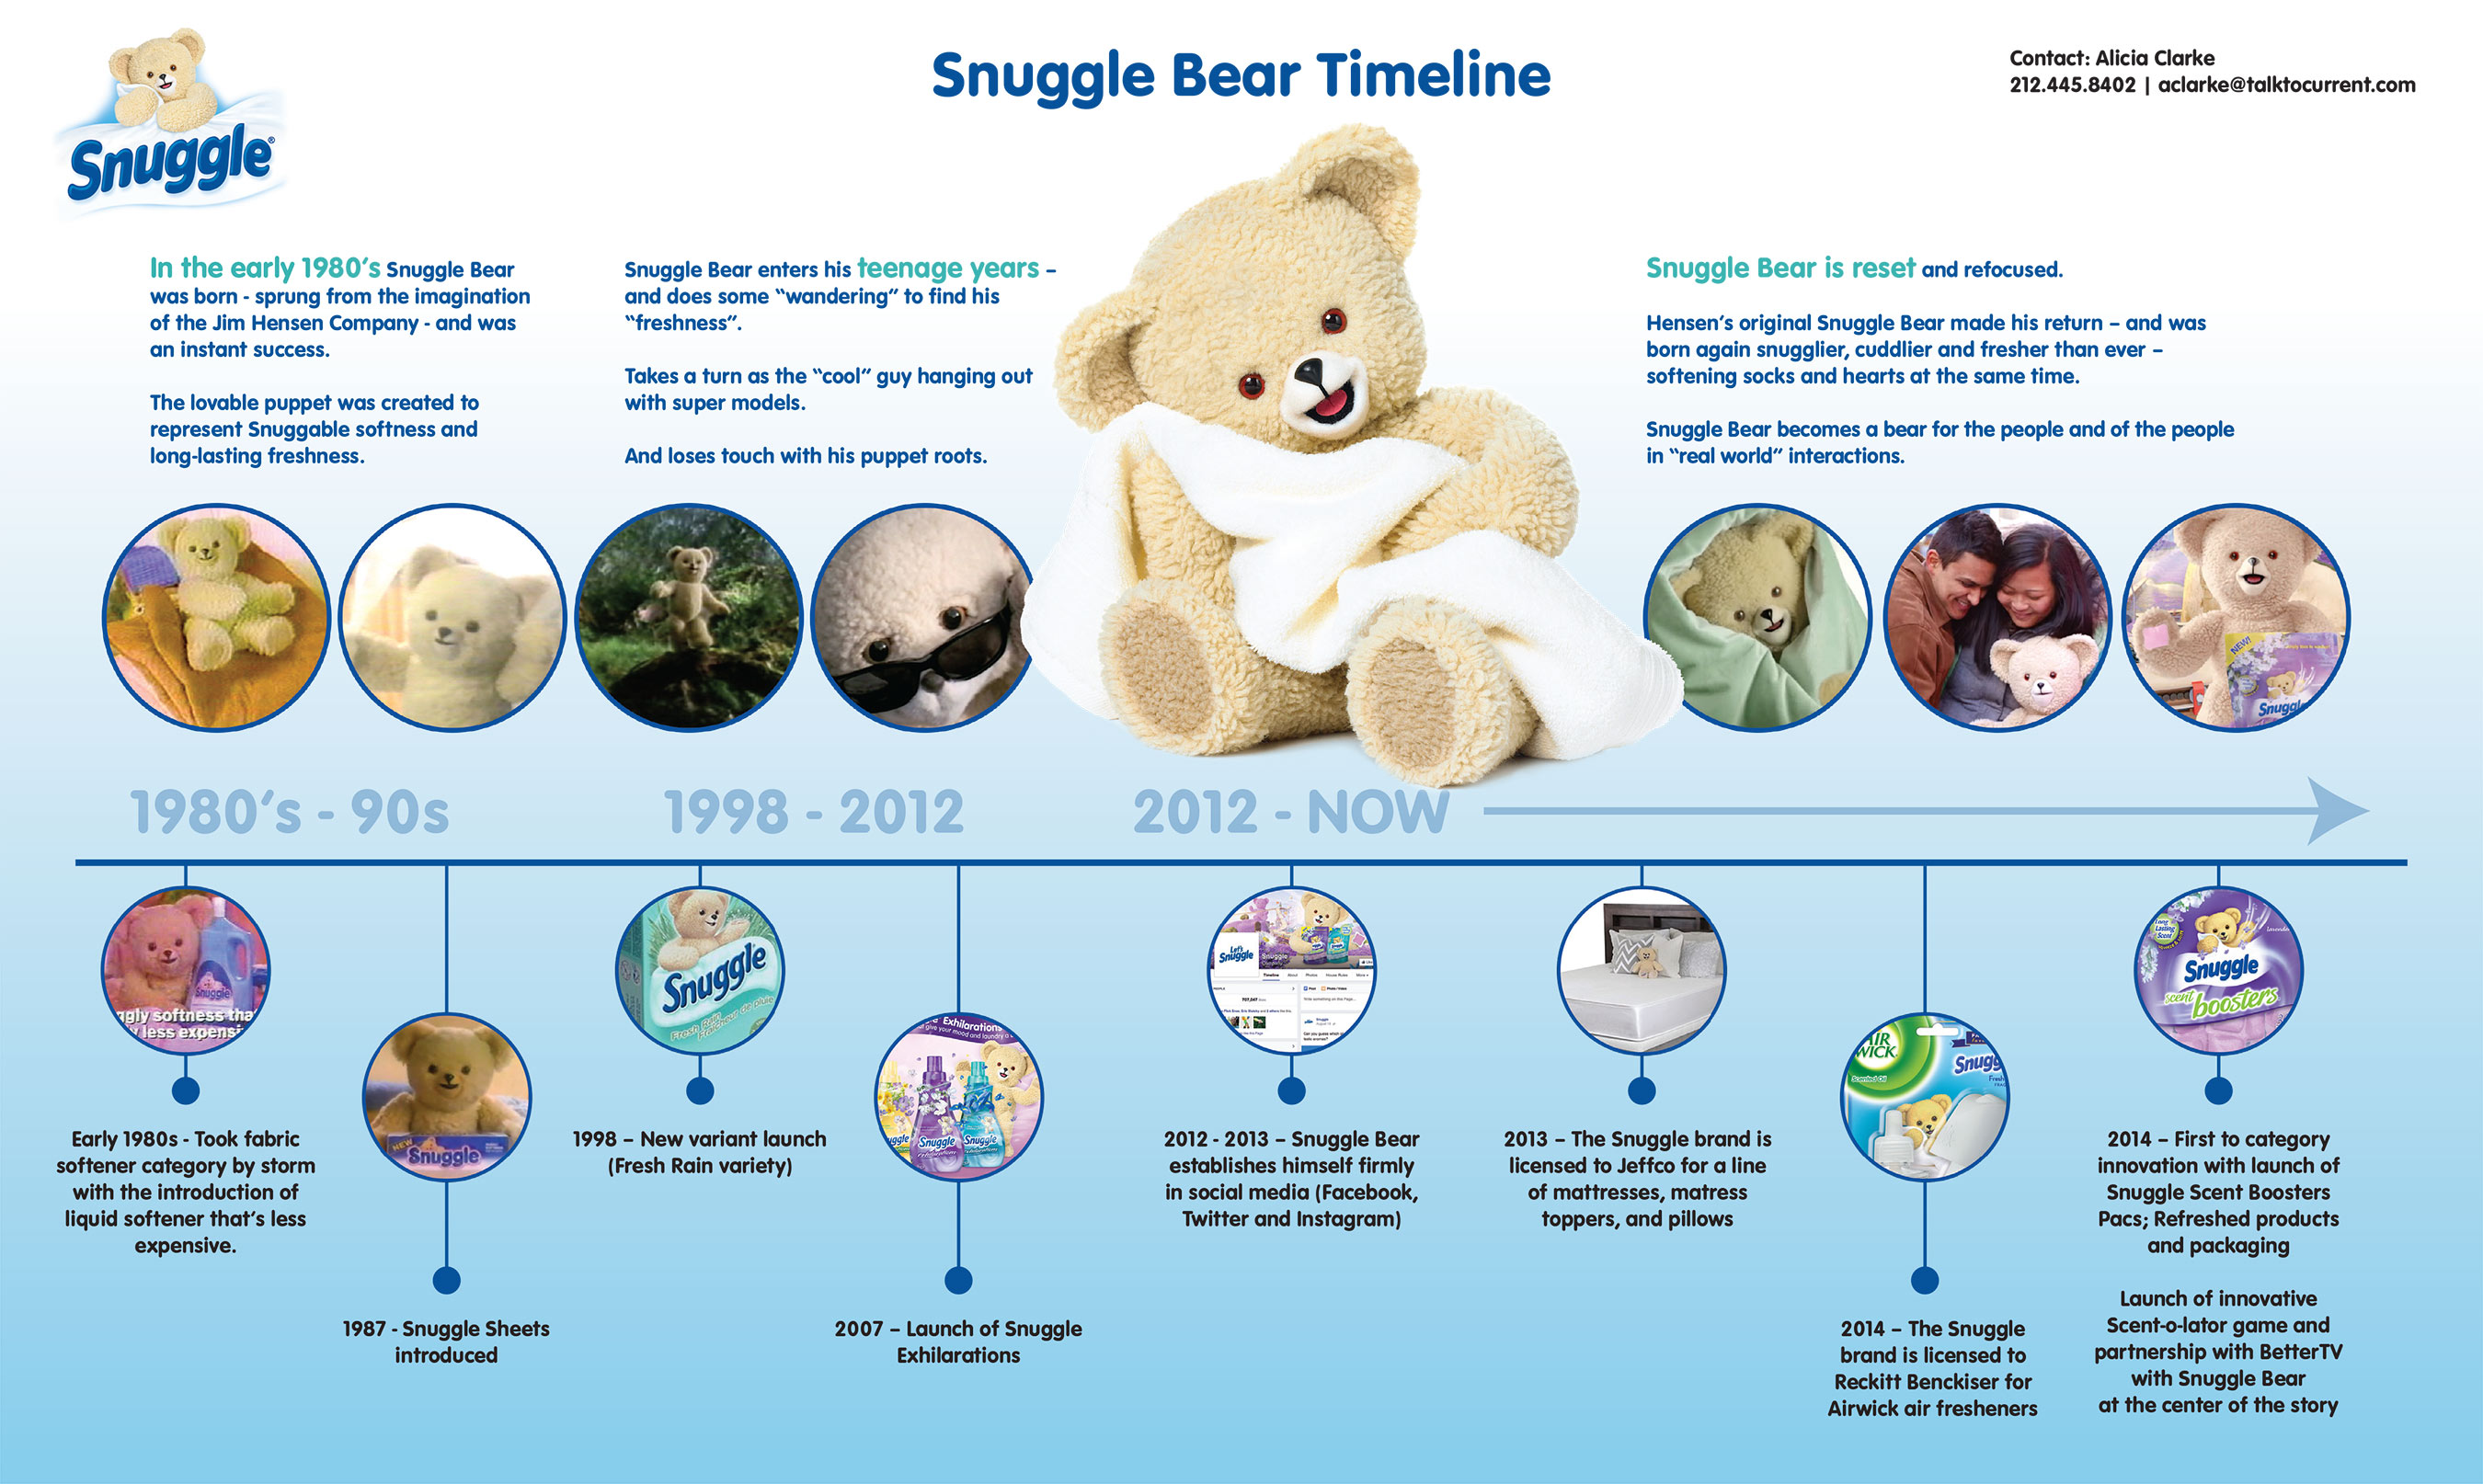 http://www.multivu.com/players/English/7312551-snuggle-bear-throwback-thursday-celebrates-thirty-years/gallery/image/f5d5011f-aae4-4326-a4fb-aed72009aec2.HR.jpg